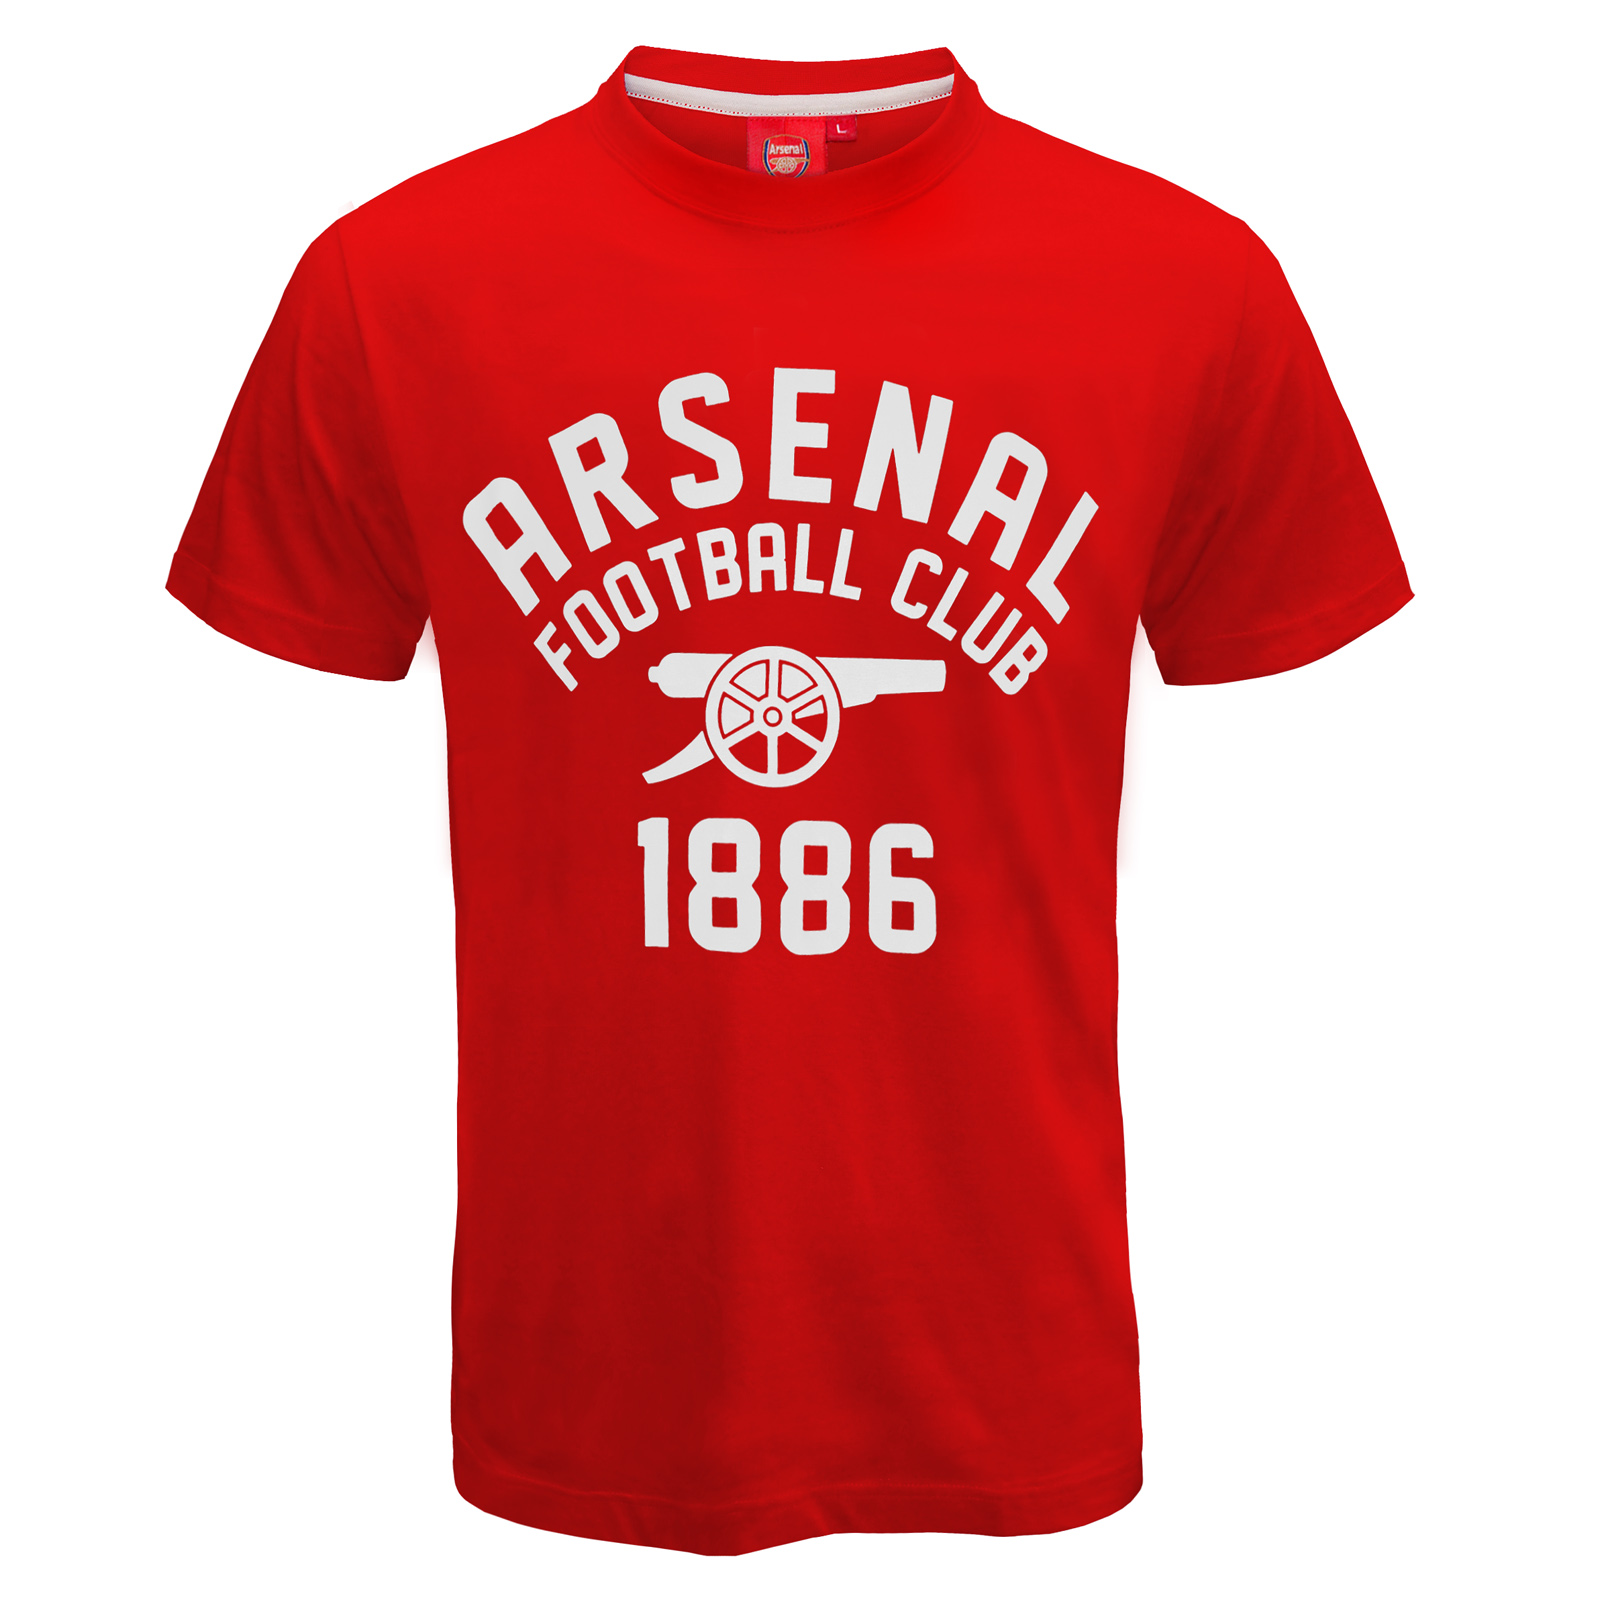 Arsenal football club official soccer gift mens graphic t for Arsenal t shirts sale